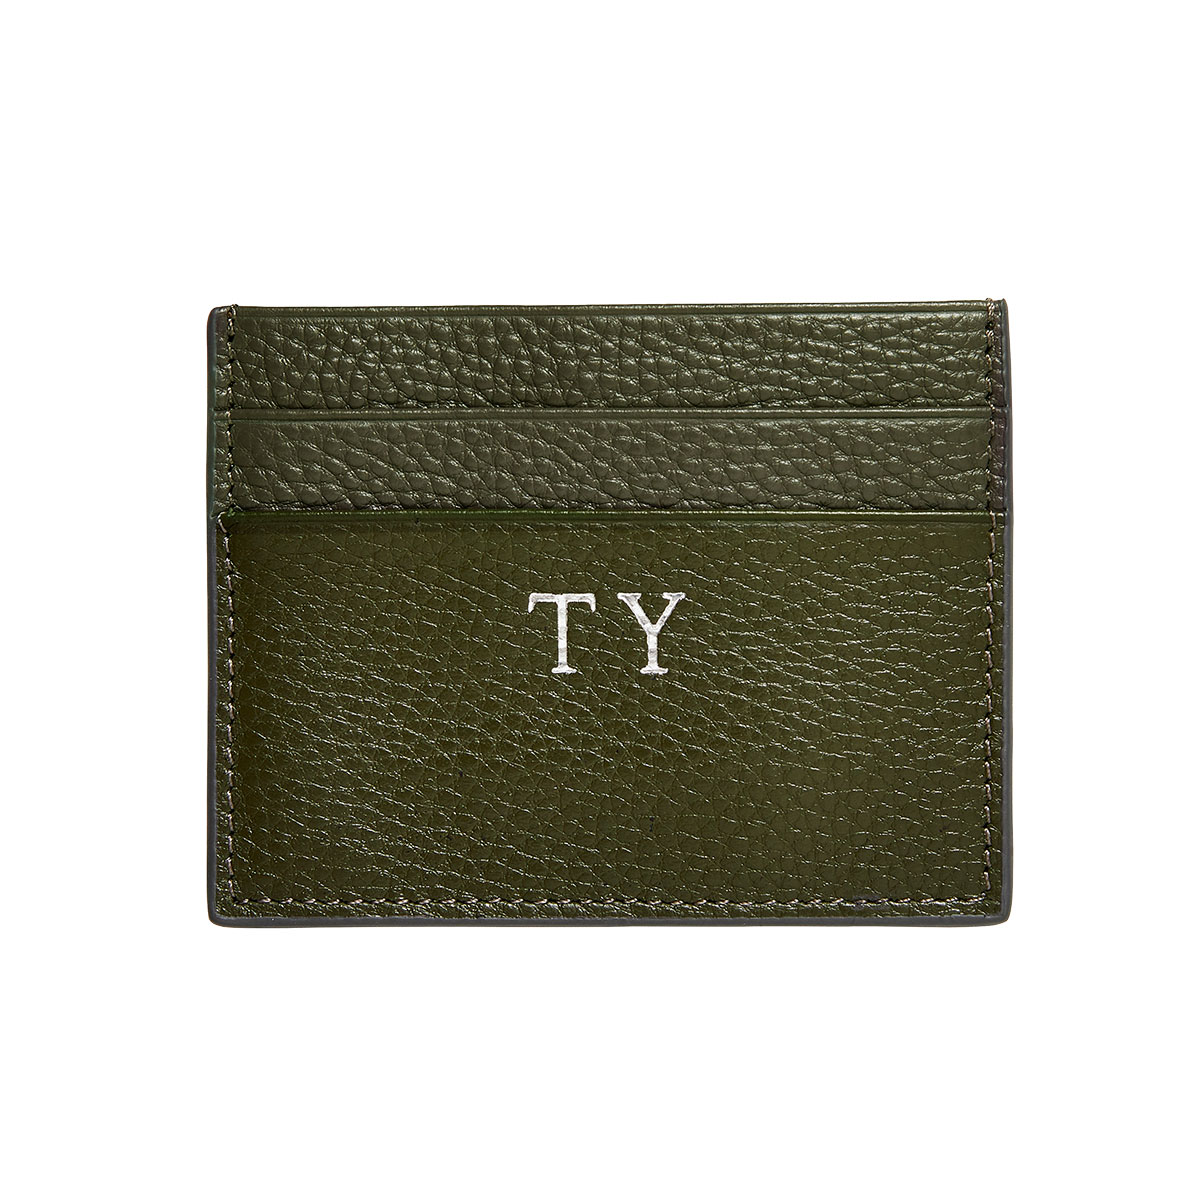 The Daily Edited Pebbled Double Cardholder